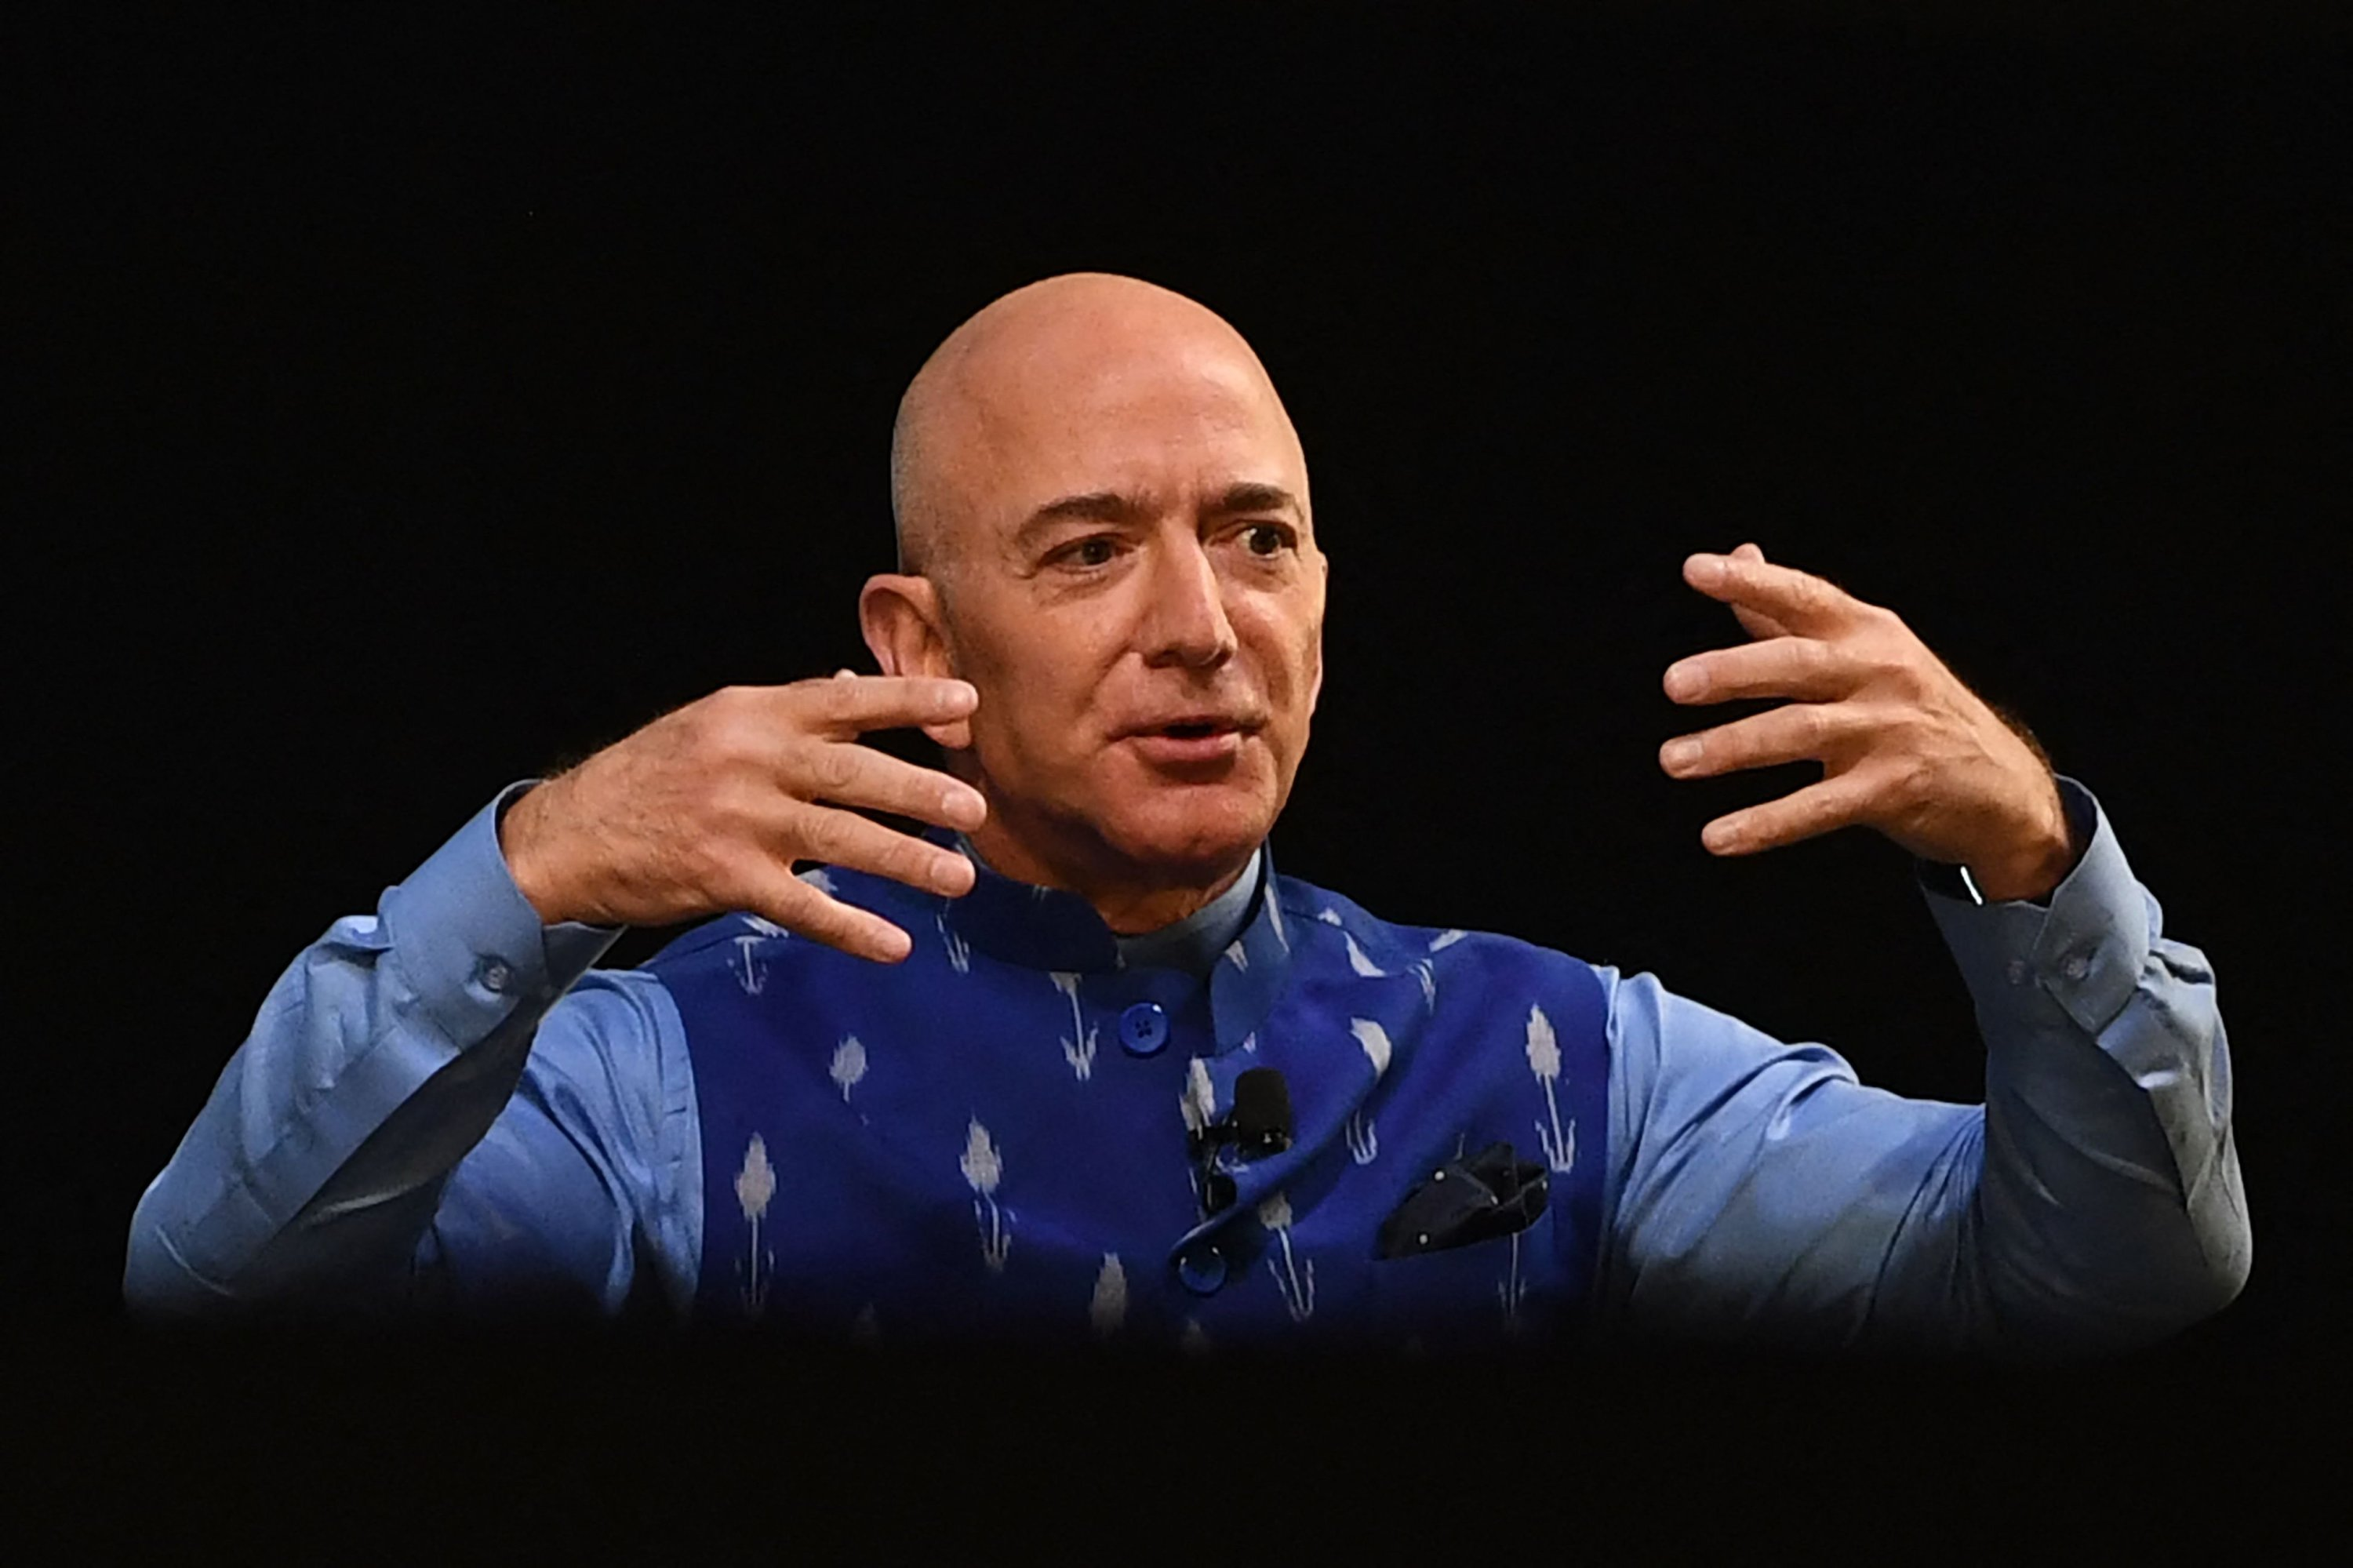 Founder Jeff Bezos gestures as he addresses Amazon's annual Smbhav event in New Delhi, India, Jan. 15, 2020. (AFP)